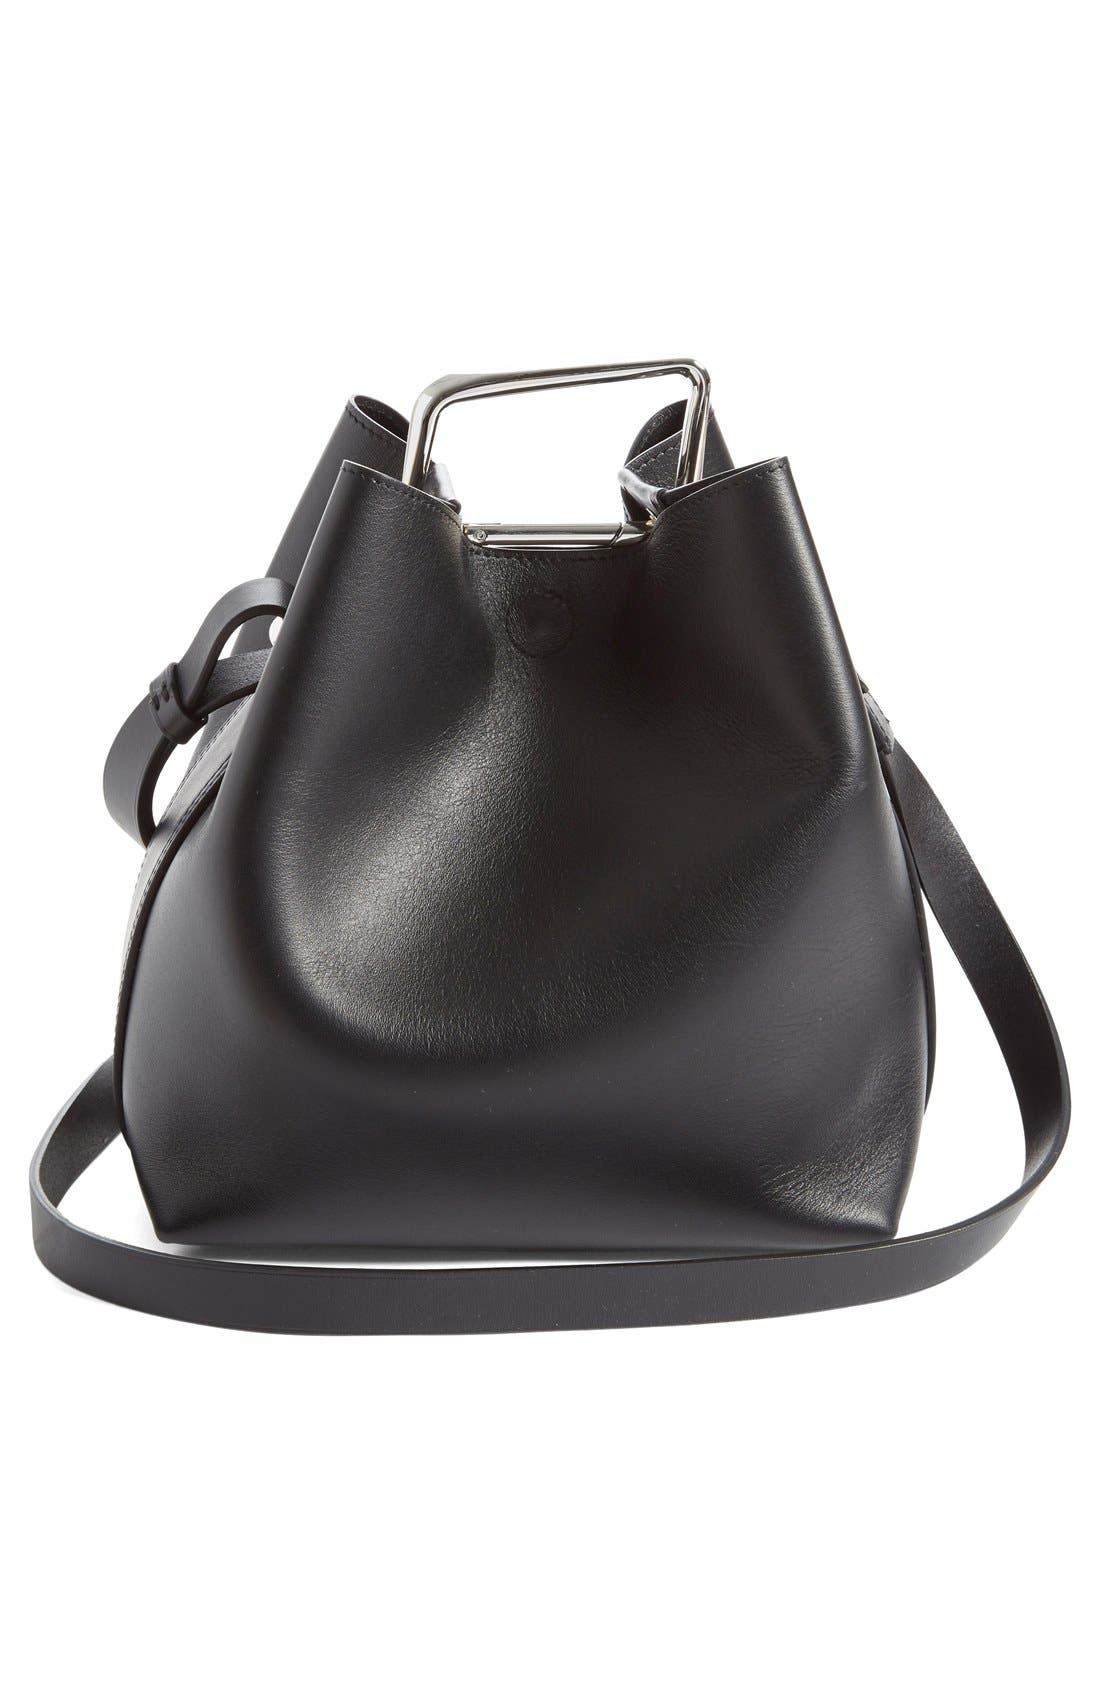 'Mini Quill' Leather Bucket Bag,                             Alternate thumbnail 2, color,                             011